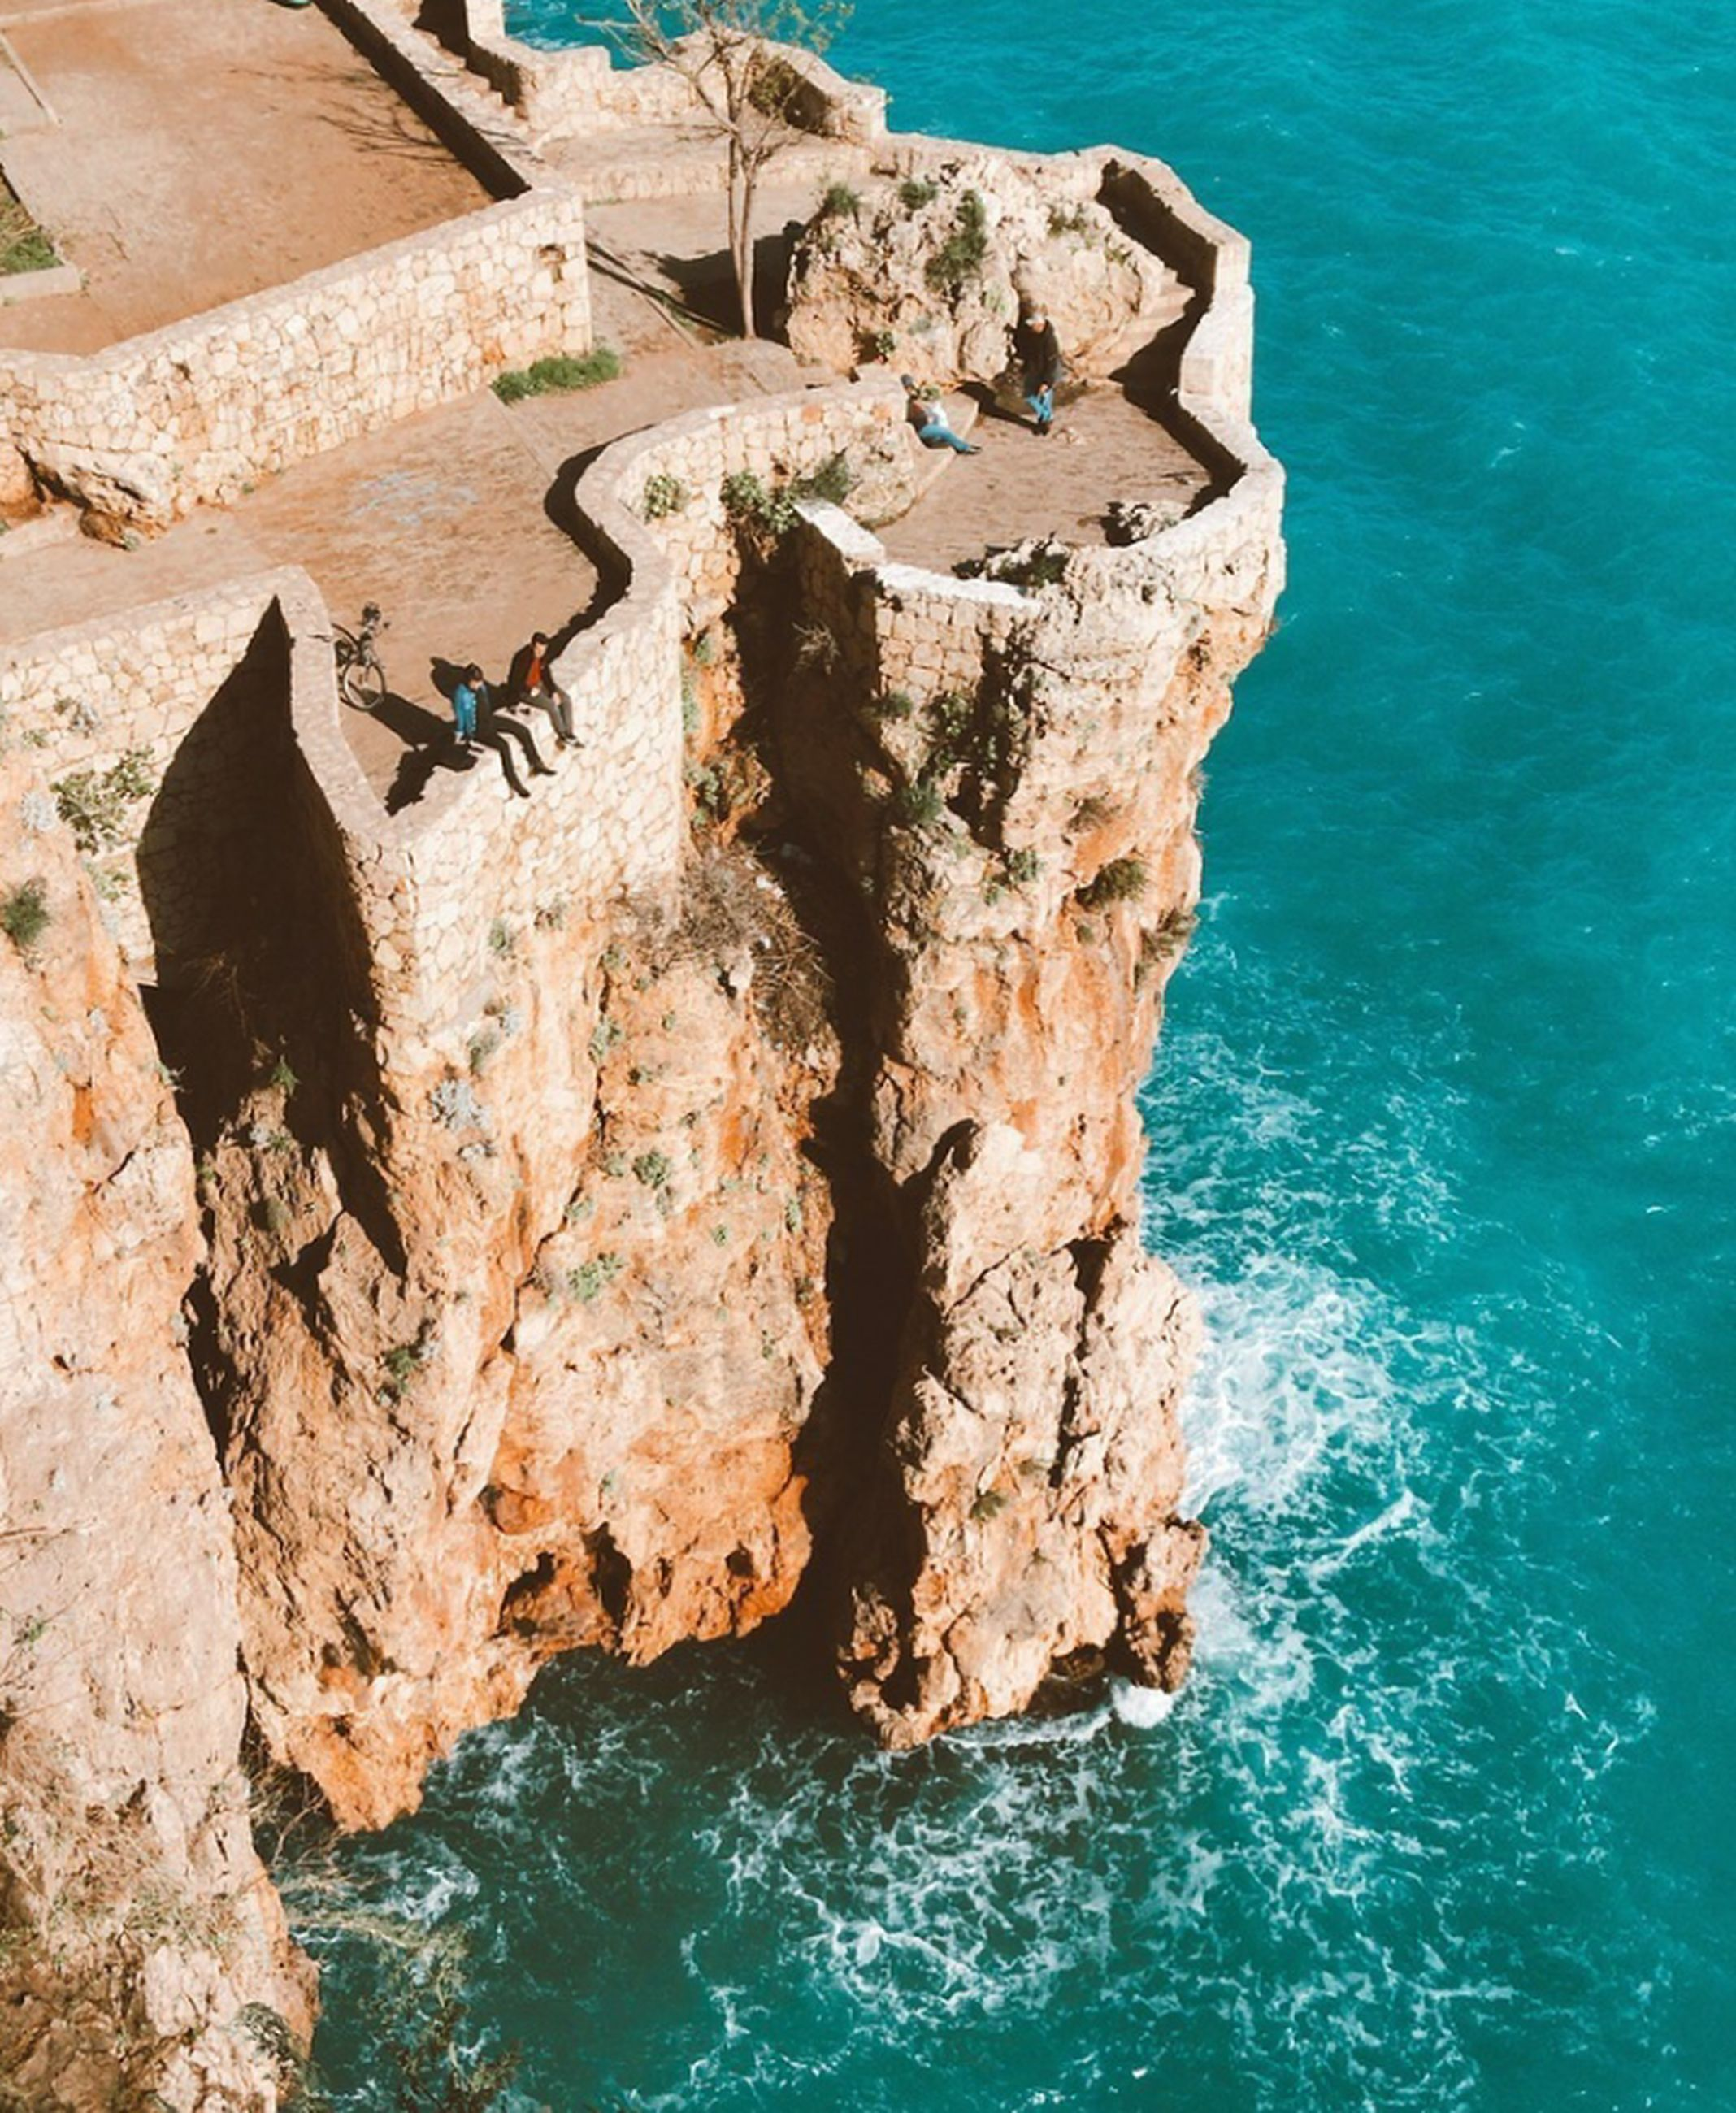 water, rock, sea, solid, rock - object, nature, rock formation, high angle view, day, animal wildlife, sunlight, animal, animal themes, animals in the wild, outdoors, cliff, no people, land, blue, turquoise colored